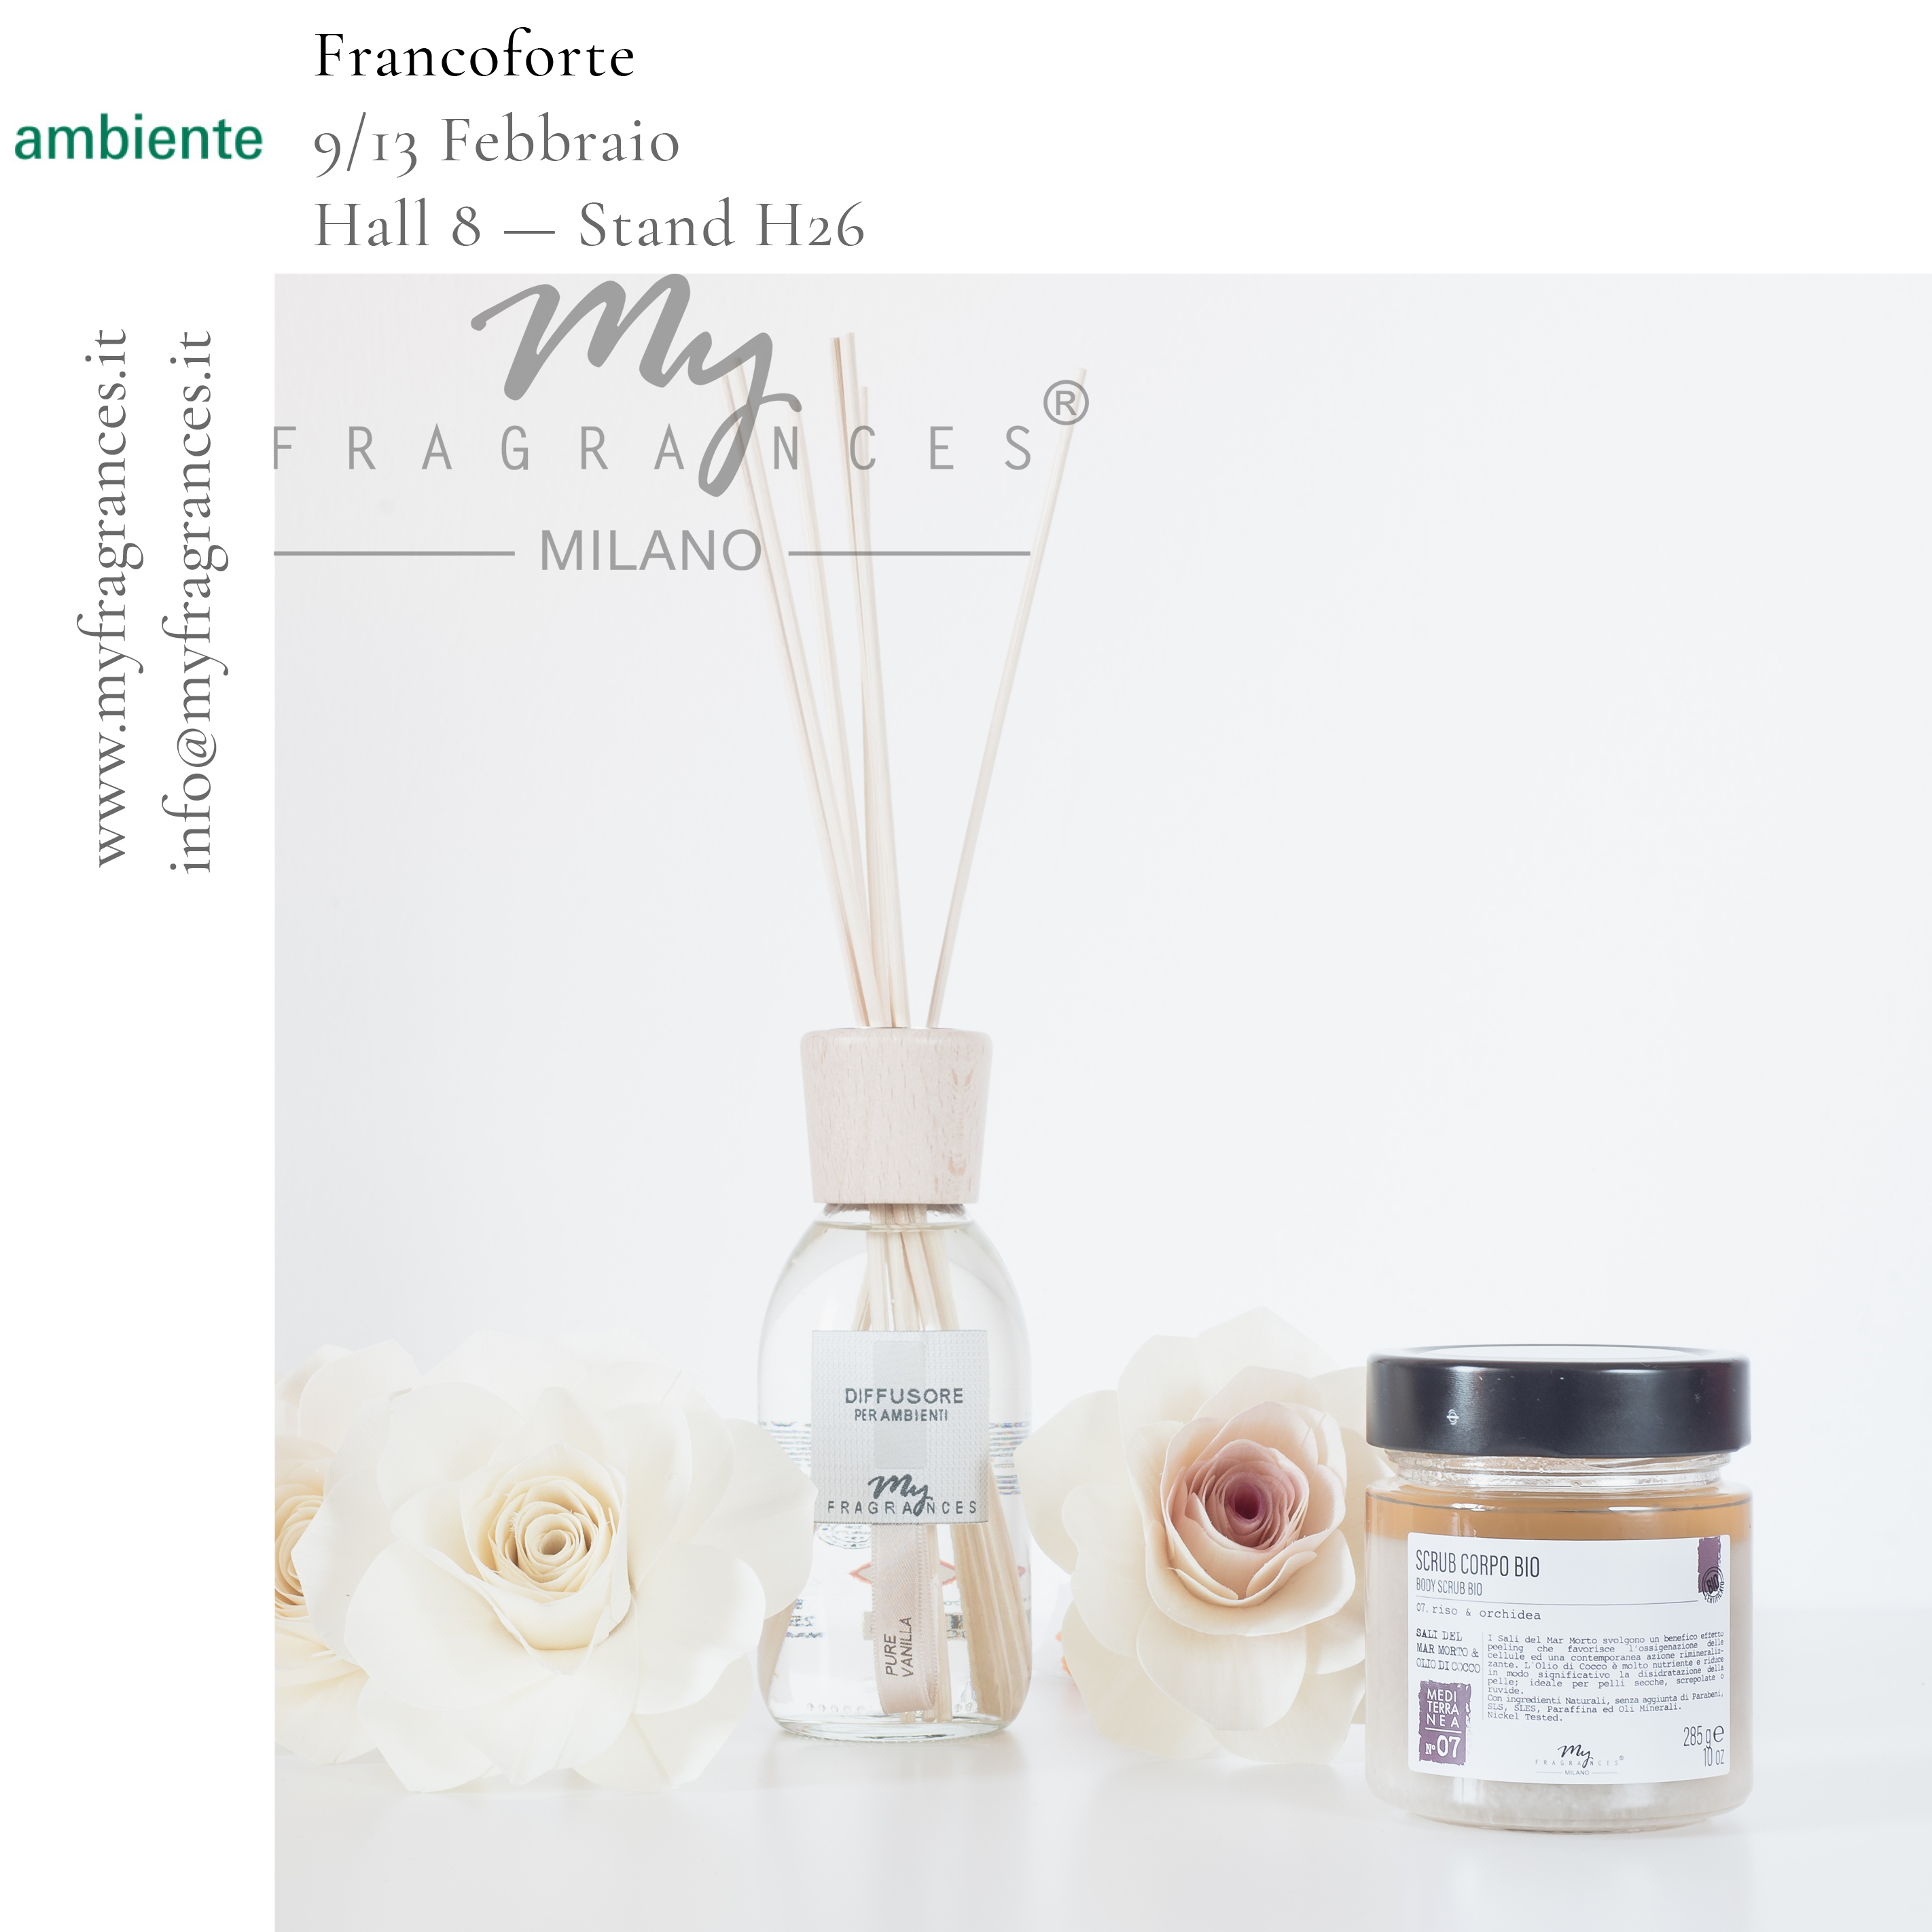 AMBIENTE fair fragrances